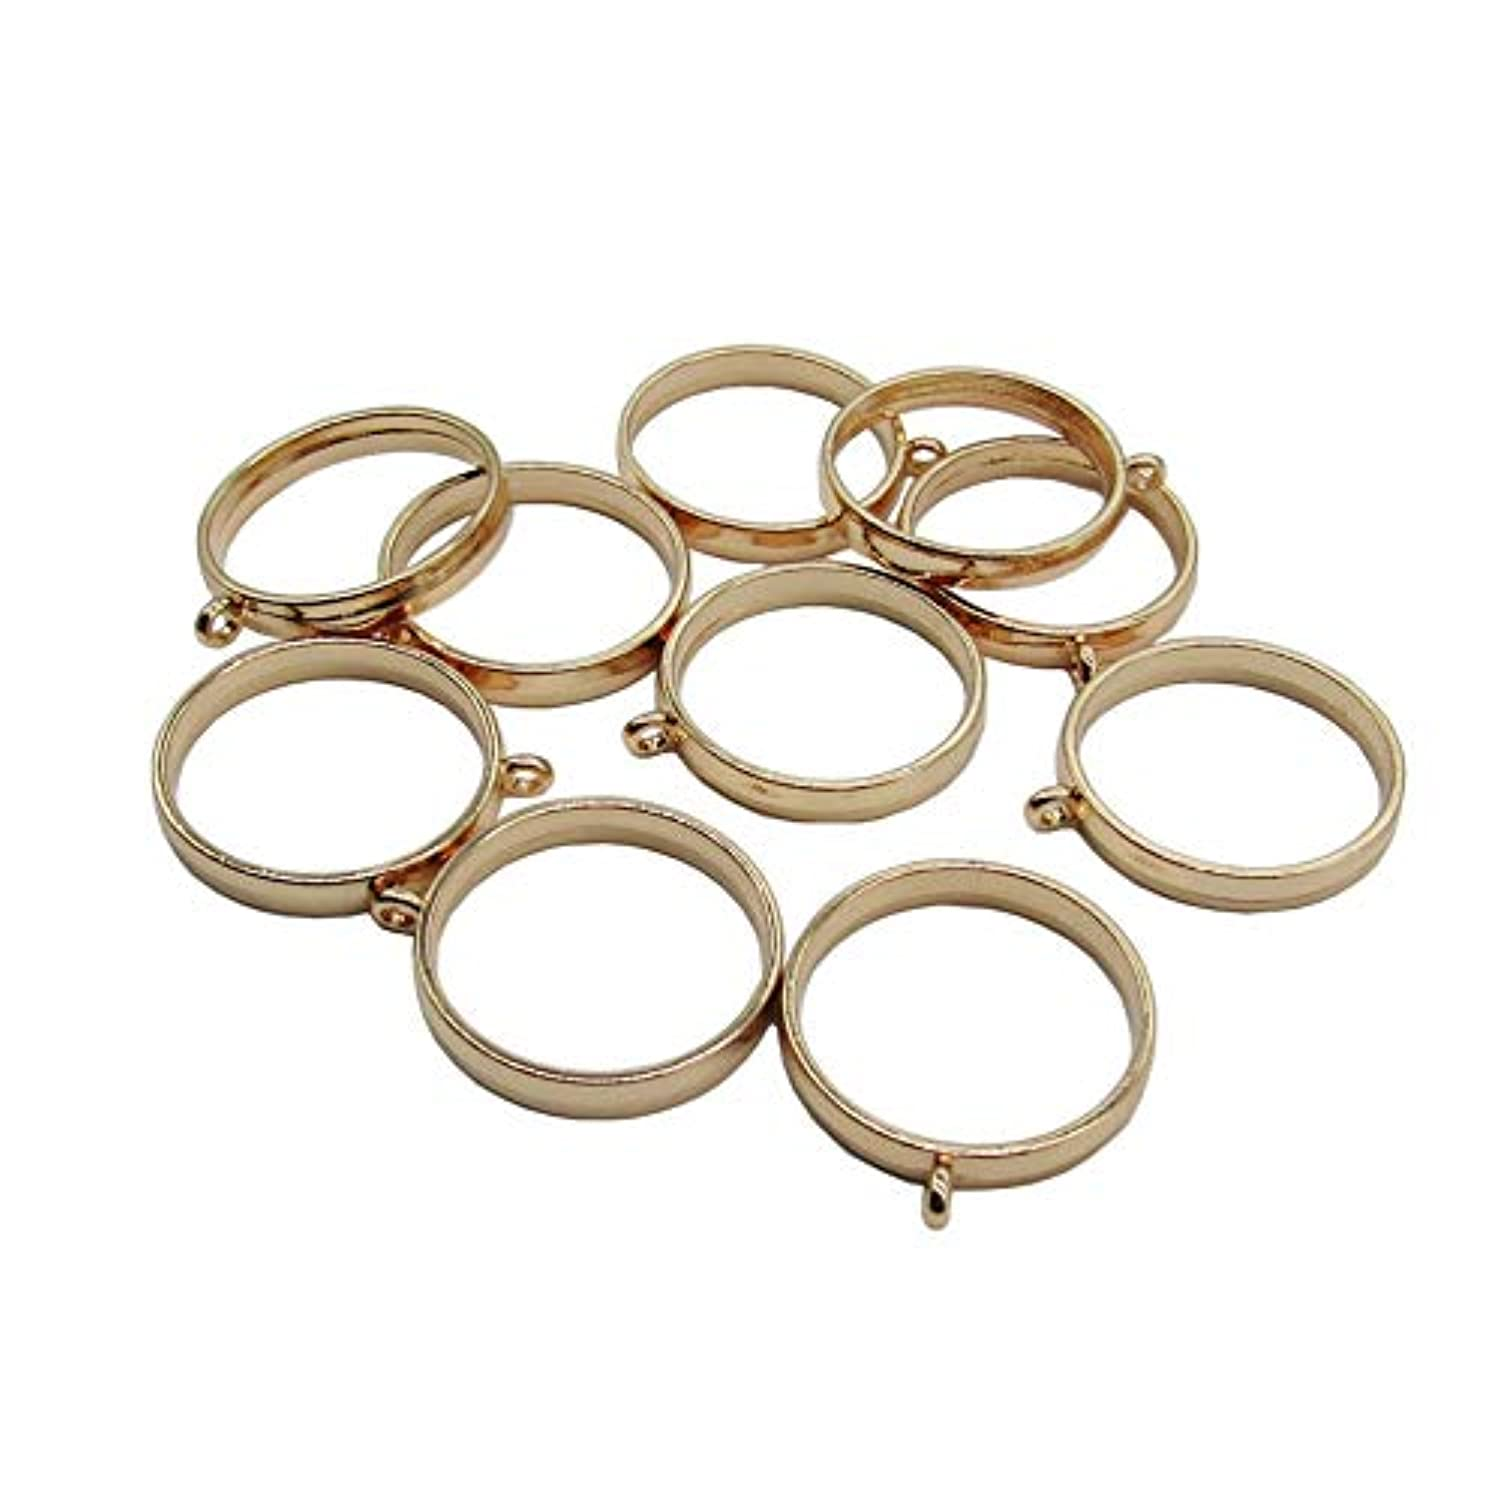 10 Pcs 25mm Gold Round Open Back Bezel Pendant Zinc Alloy Round Frame Pendant with 1 Loop for Jewelry Making